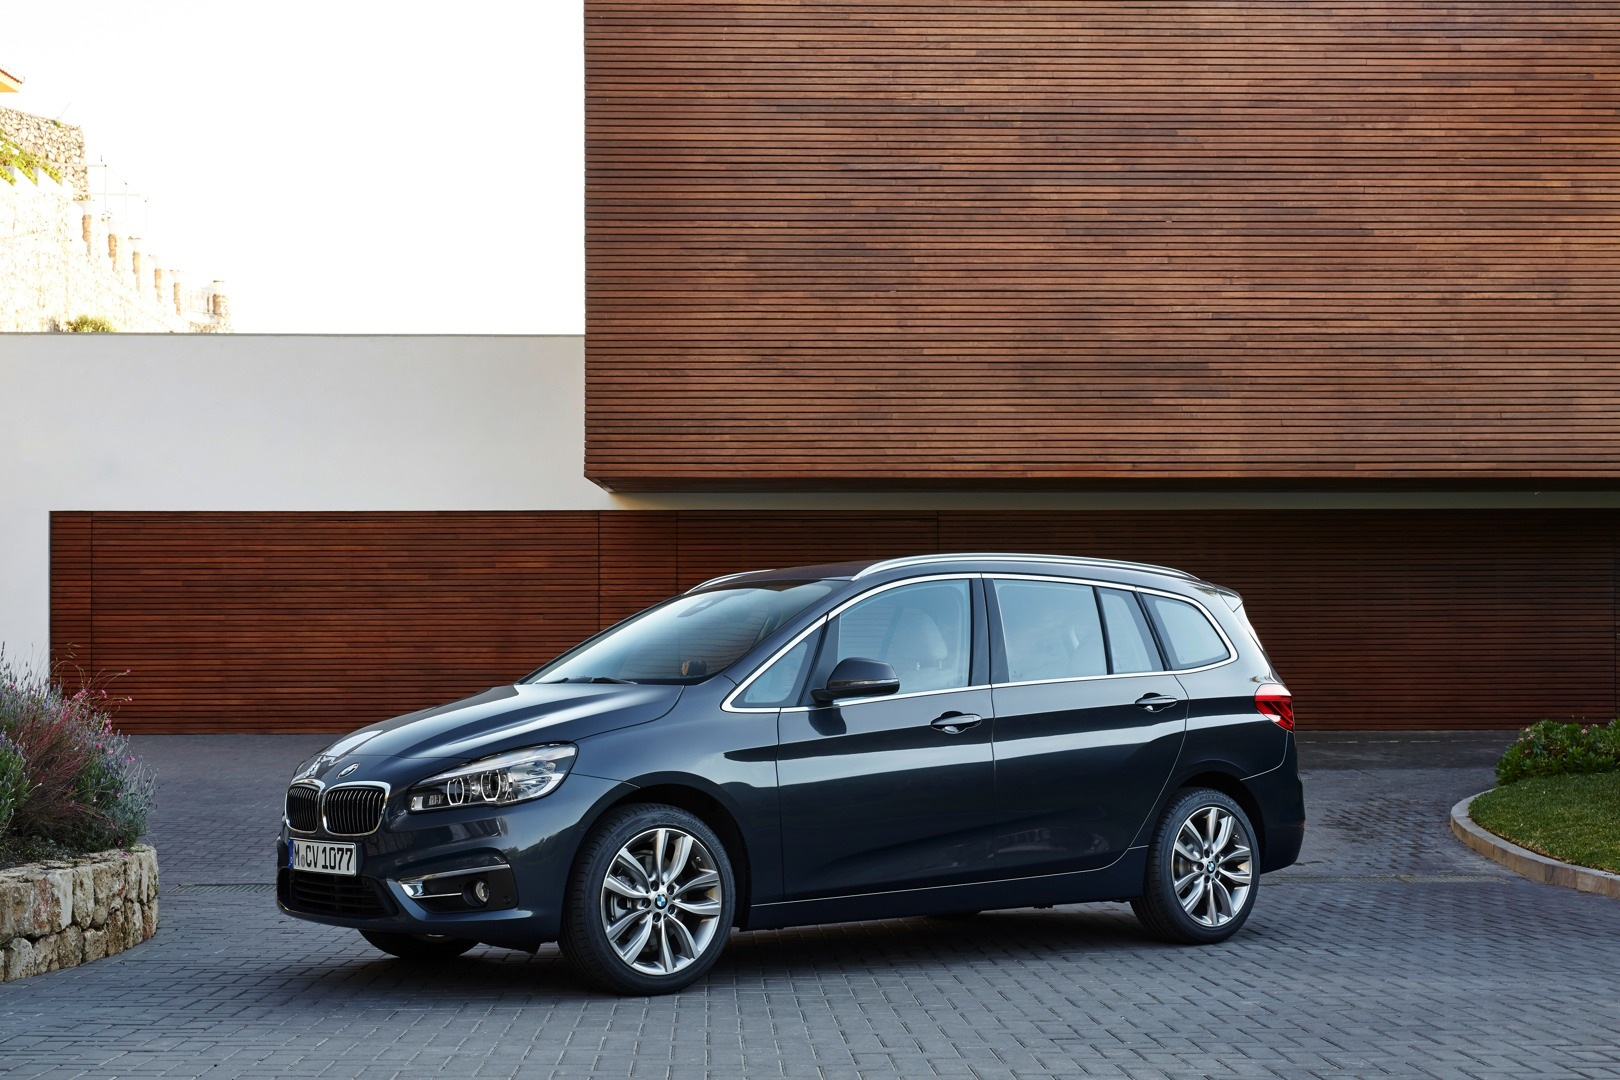 2015 bmw 2 series gran tourer pricing will start at 28 000 in europe autoevolution. Black Bedroom Furniture Sets. Home Design Ideas